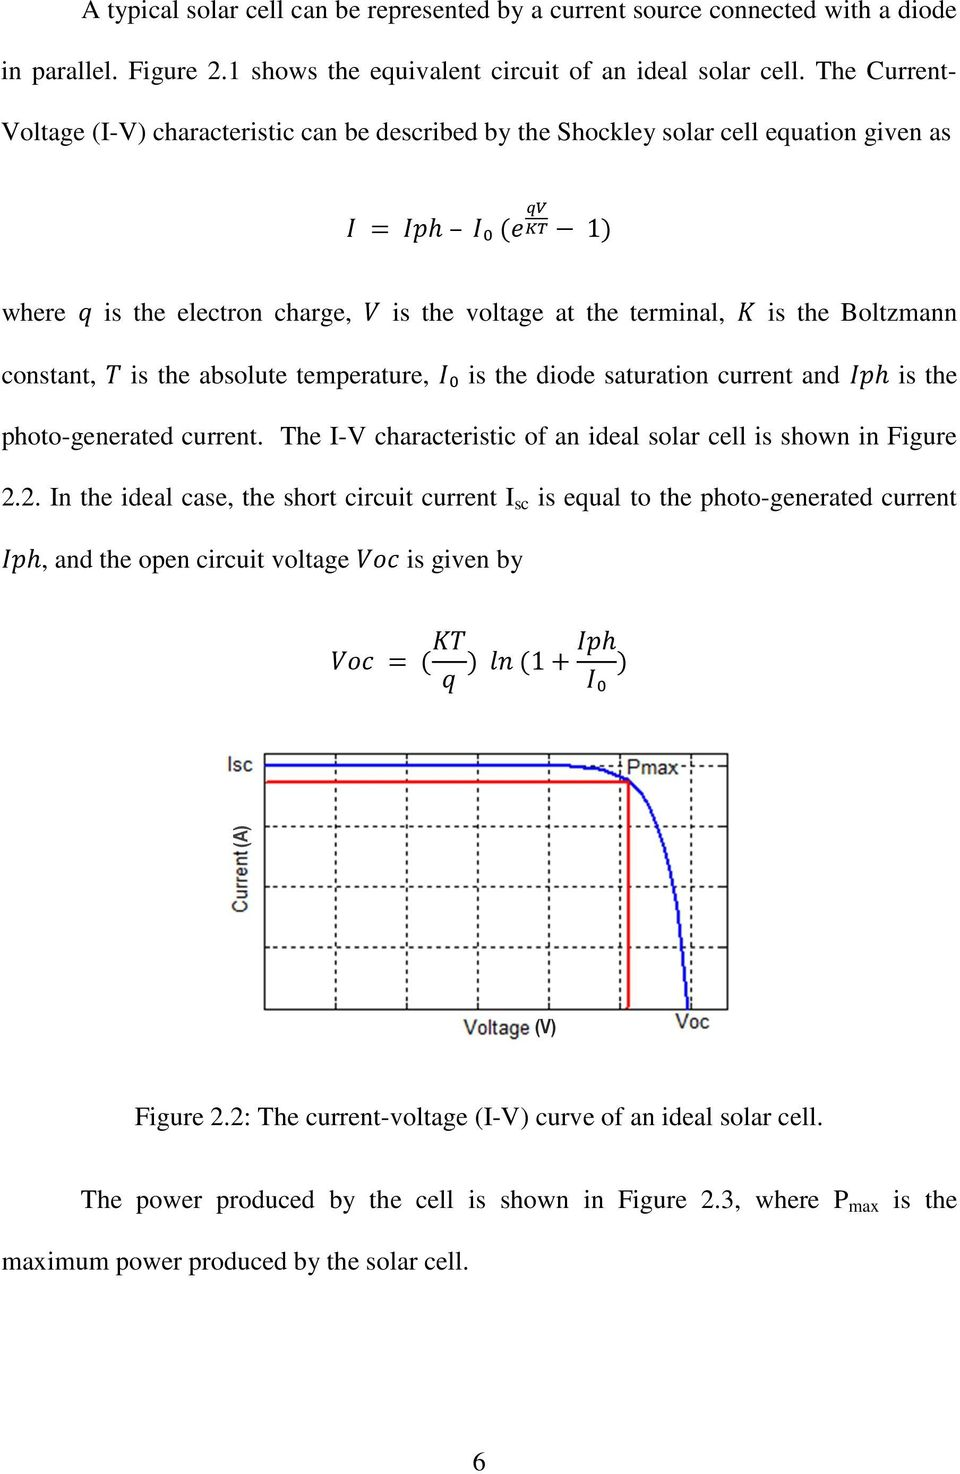 Energy Capture Improvement Of A Solar Pv System Using Multilevel Panel Optimizer Circuit Electronic Projects The Absolute Temperature Is Diode Saturation Current And Photo Generated